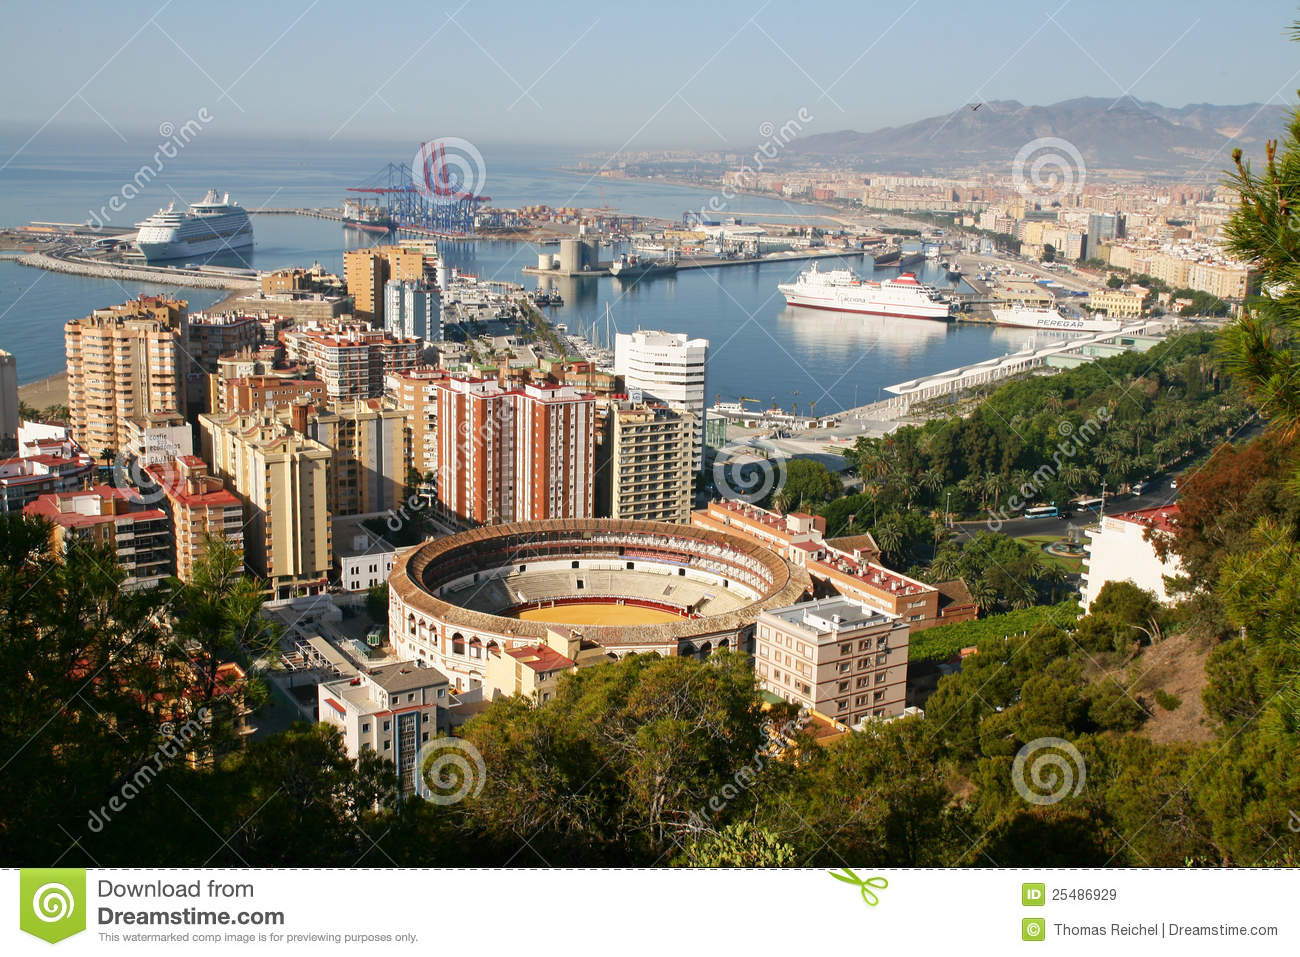 malaga spain panoramic view of the city stock image image of holidays city 25486929. Black Bedroom Furniture Sets. Home Design Ideas